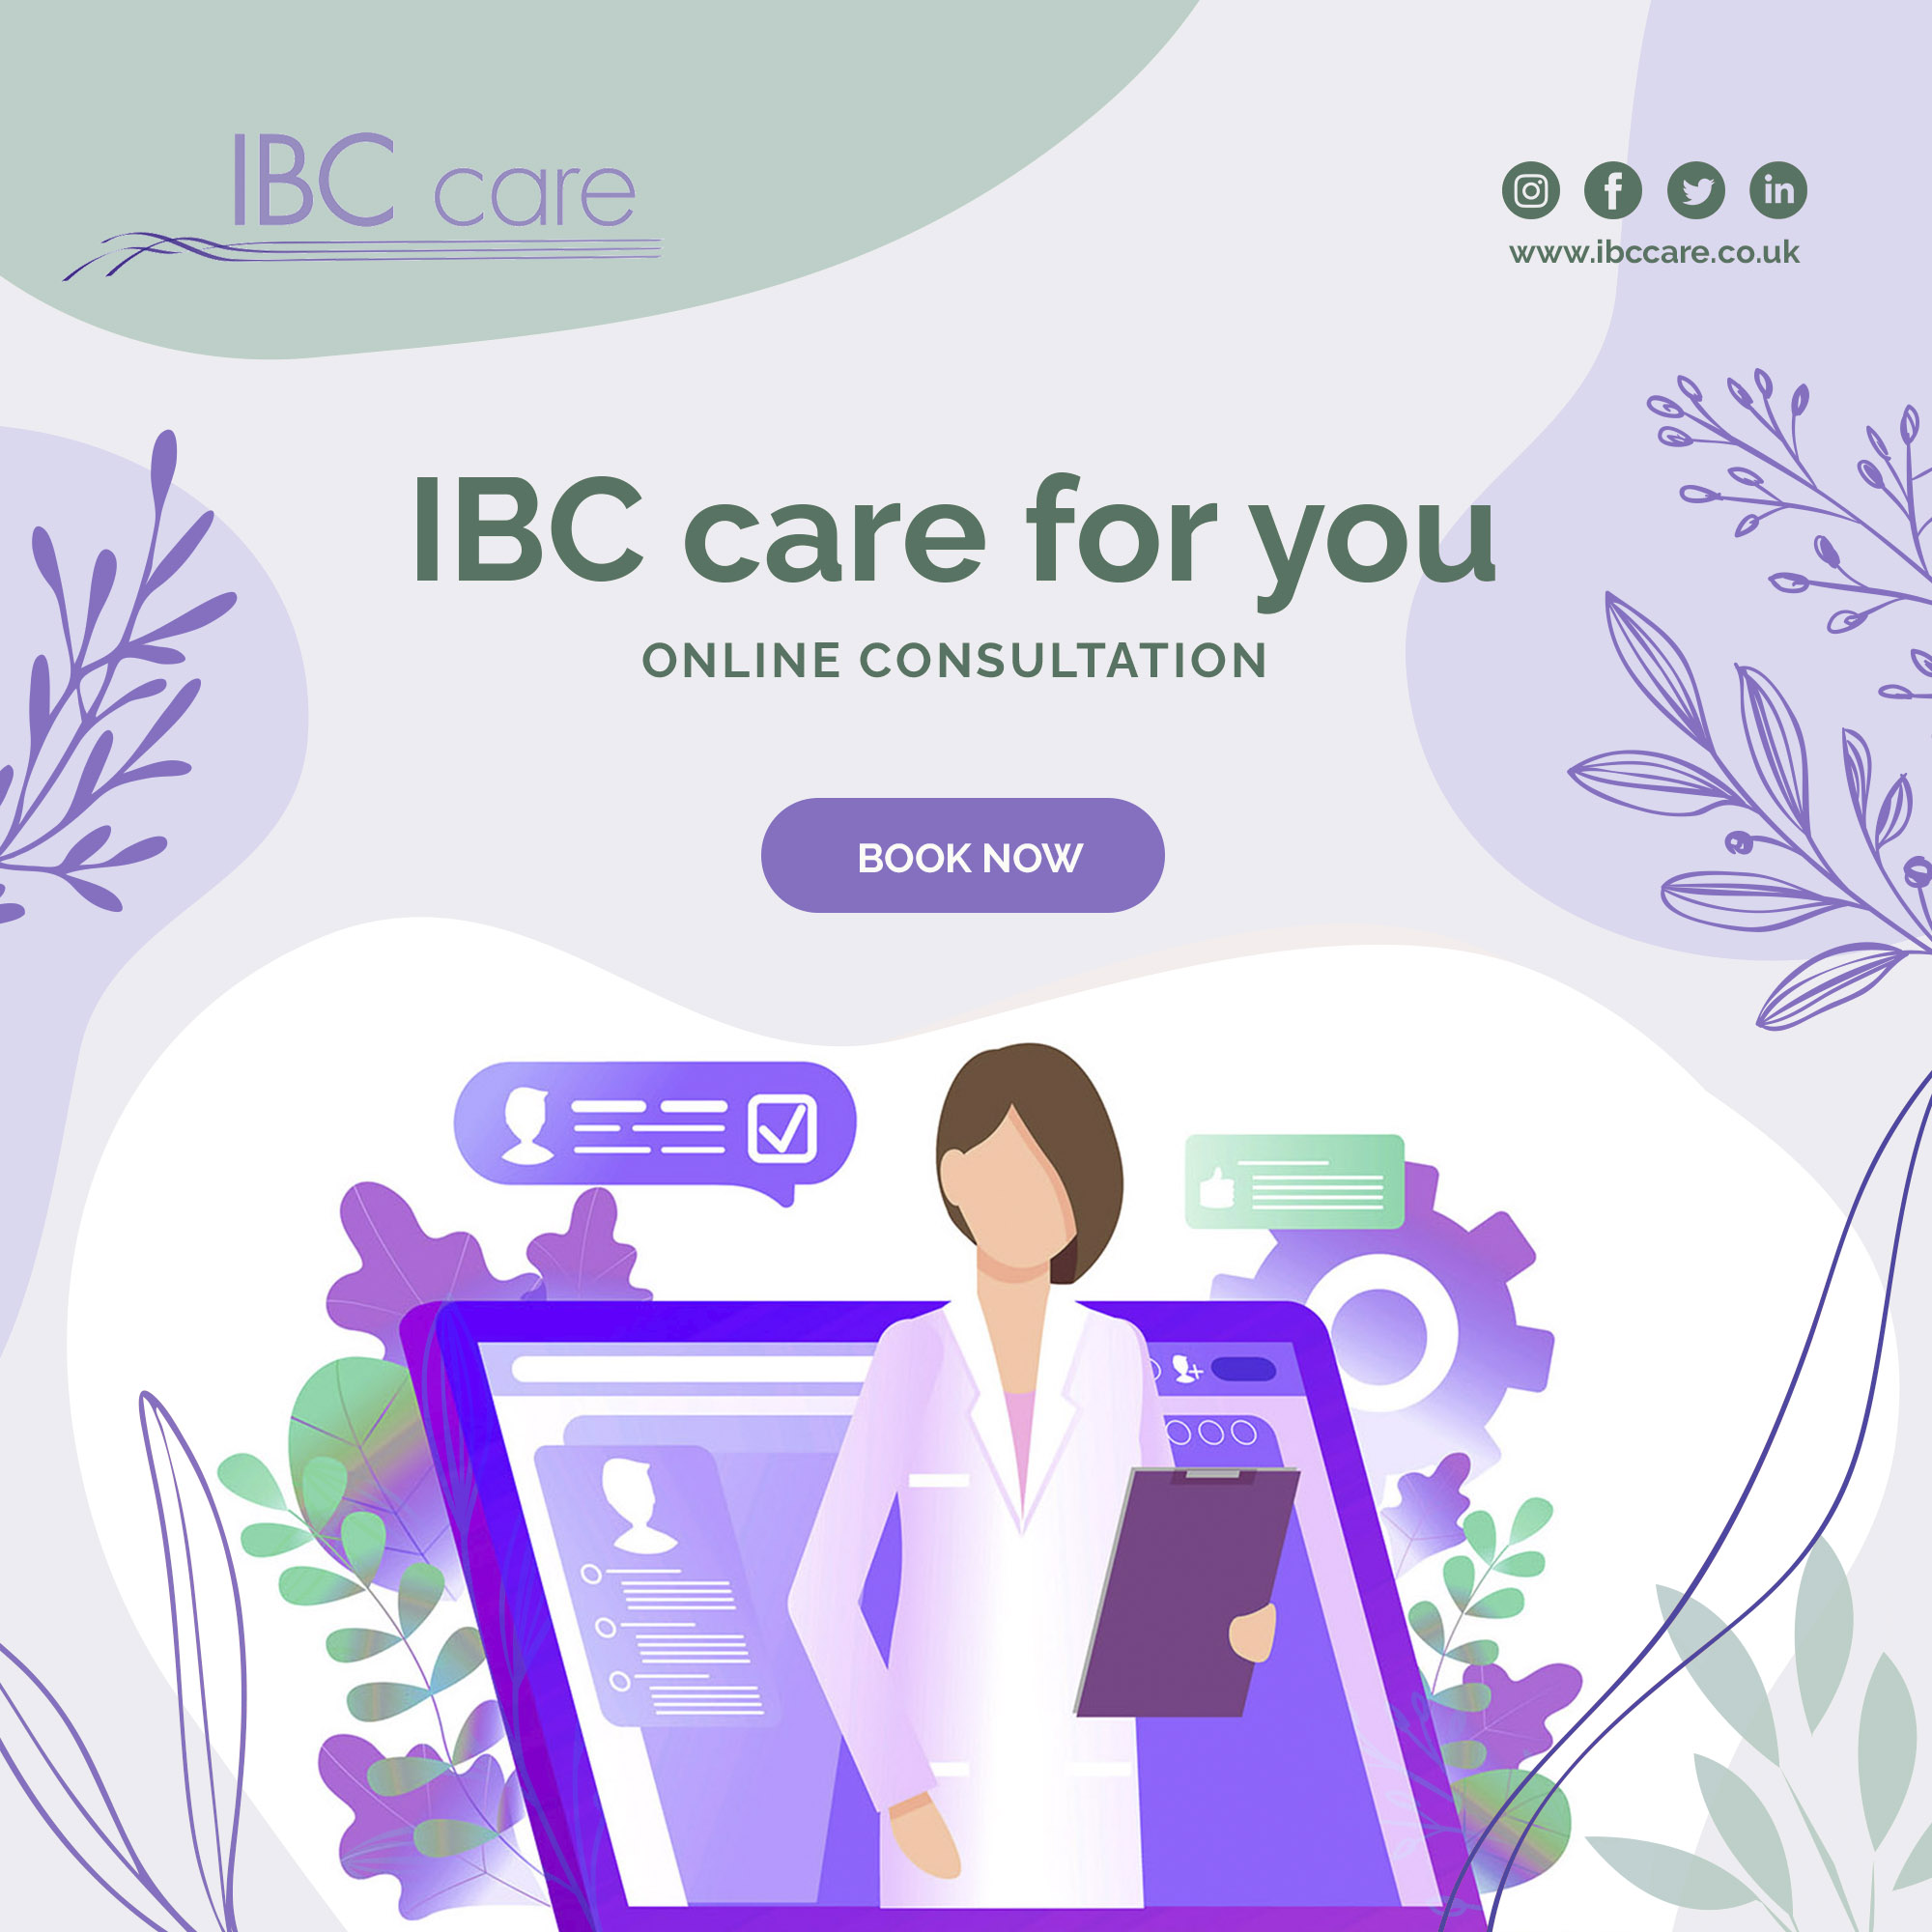 IBC care for you – Online Consultations